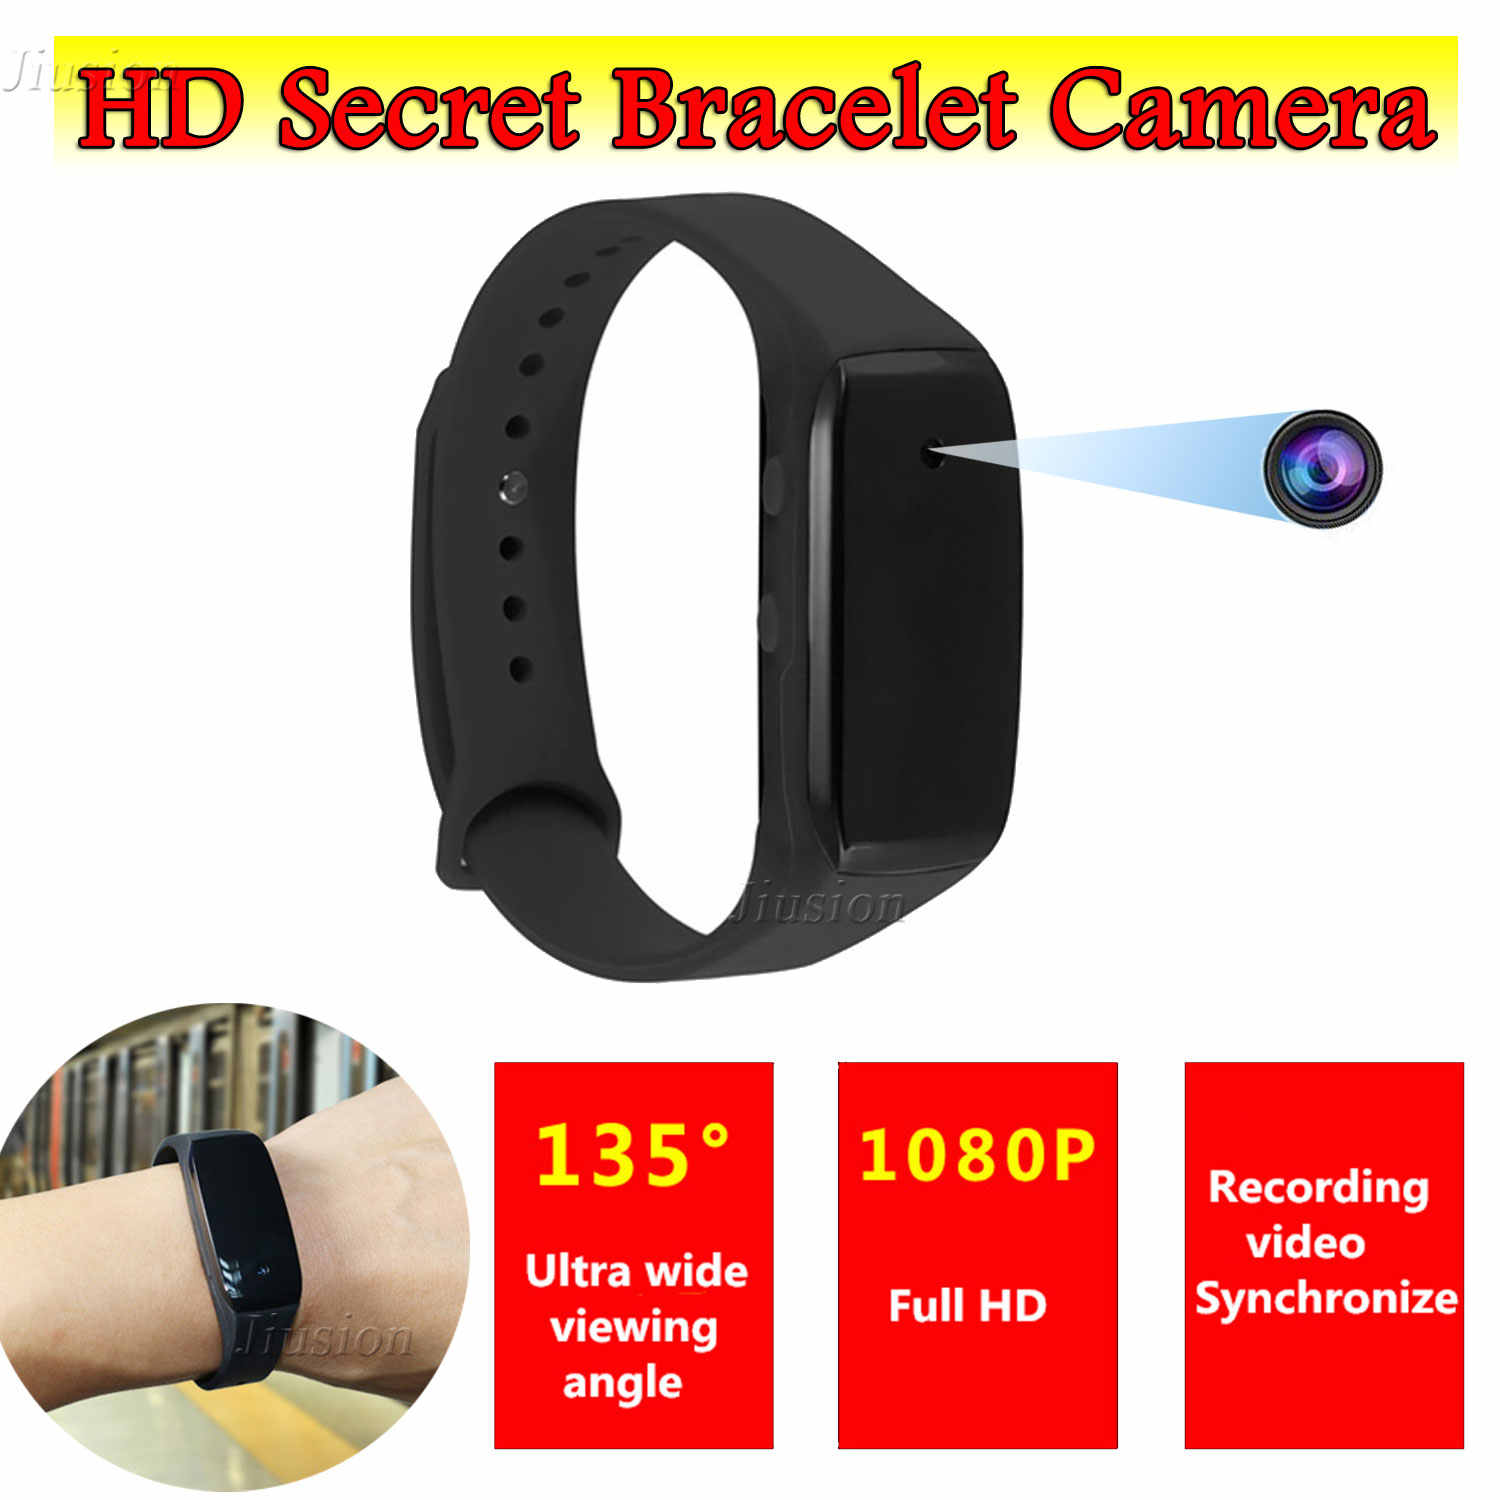 HD1080P Video Bracelet Camera Mini Secrect Invisible Camcorder 135 Degree Wide Angle Sport Wristband Recorder with Mic Micro Cam